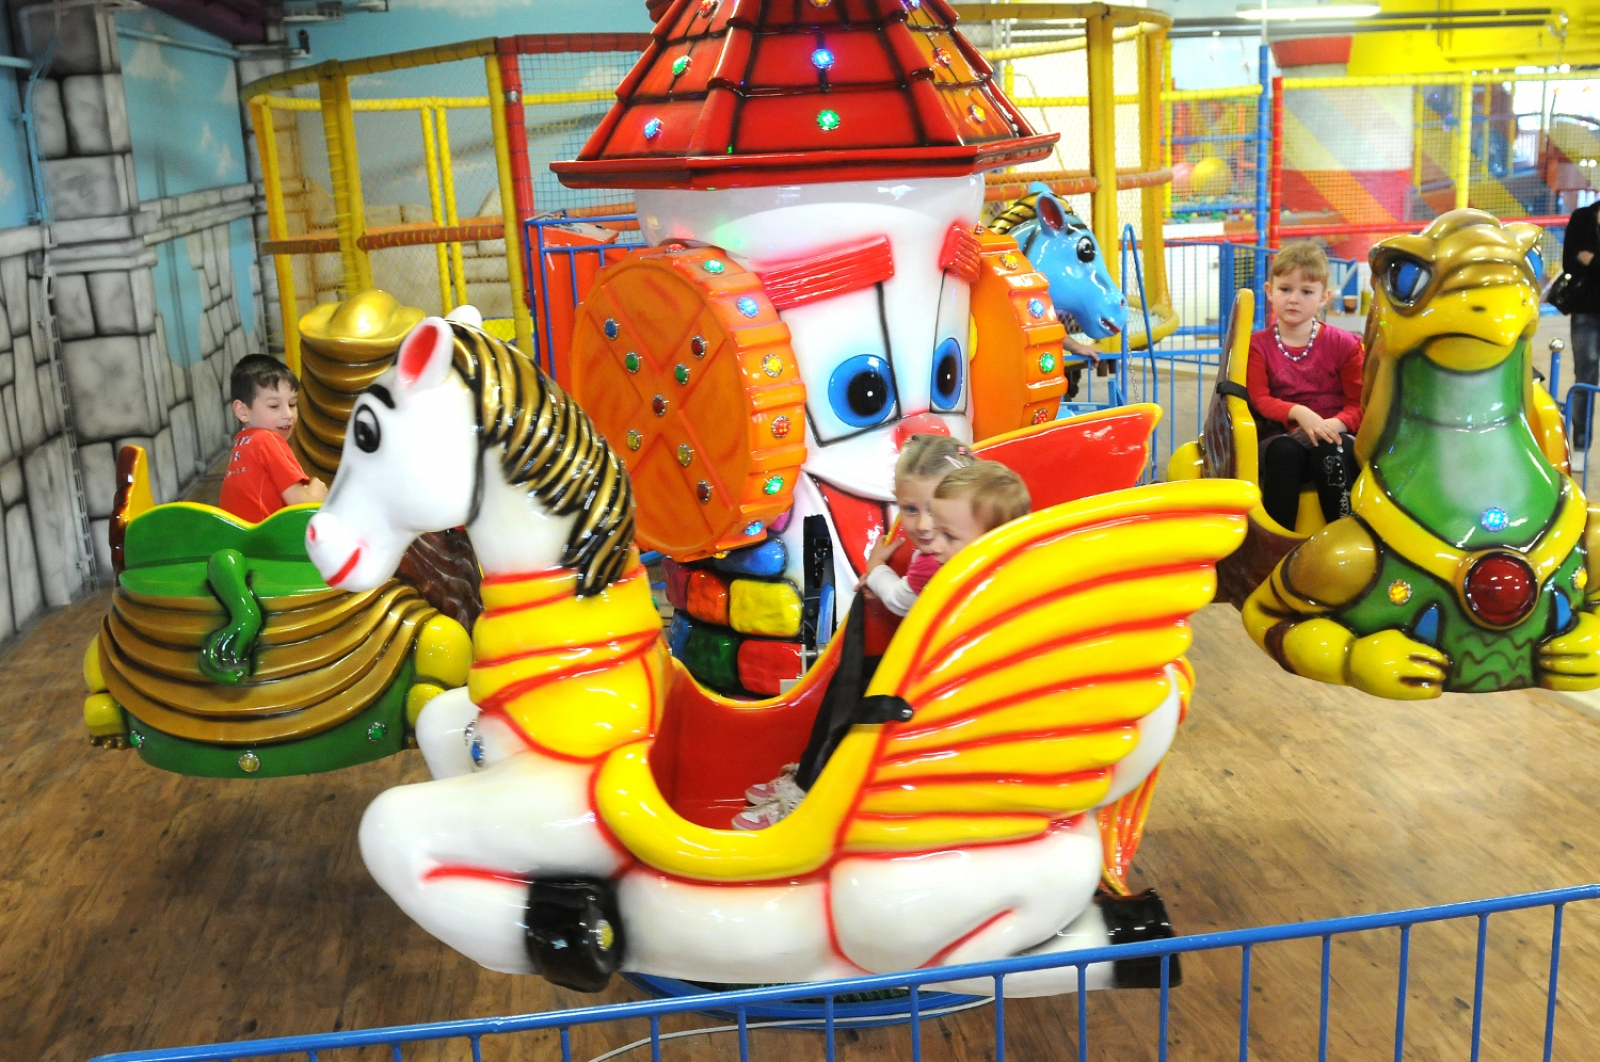 carnival carousel surely your mom used to tell you stories about rides